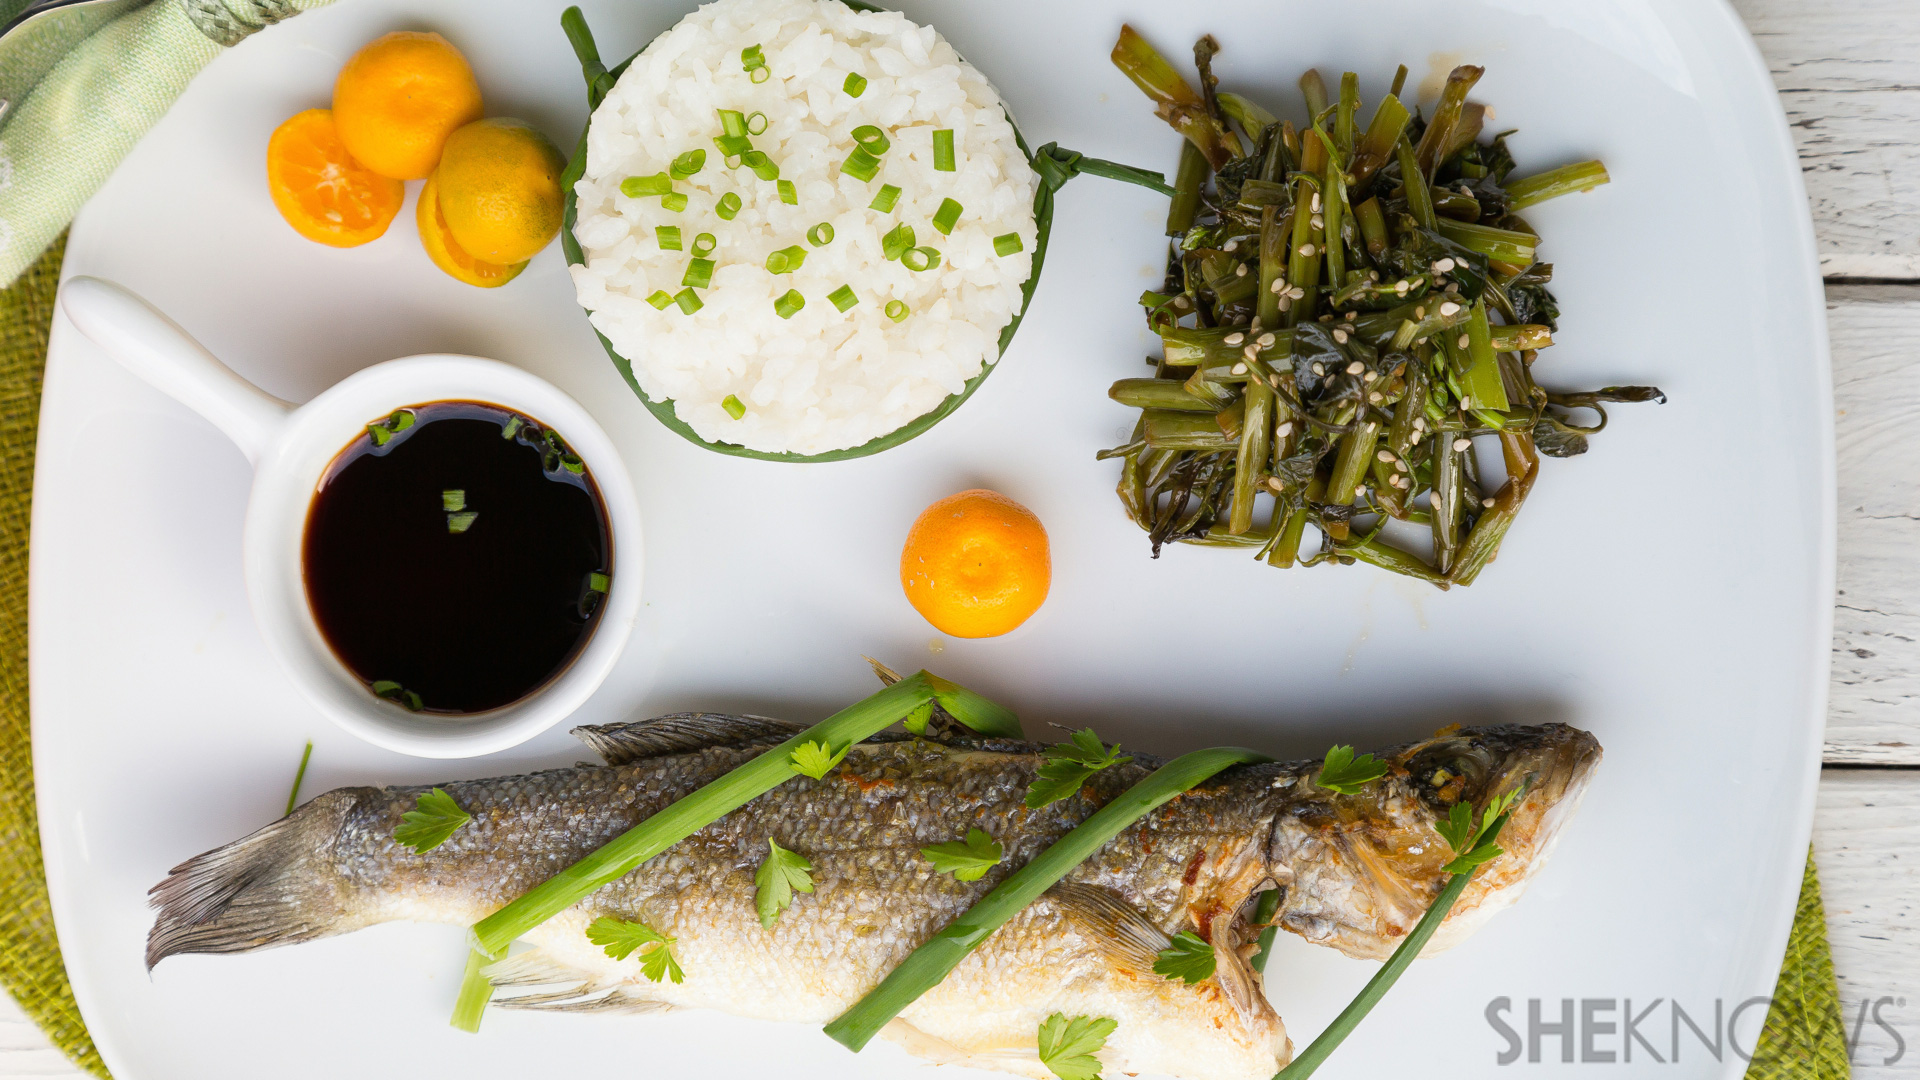 Asian meal: Fried whole fish, adobo water spinach and steamed rice